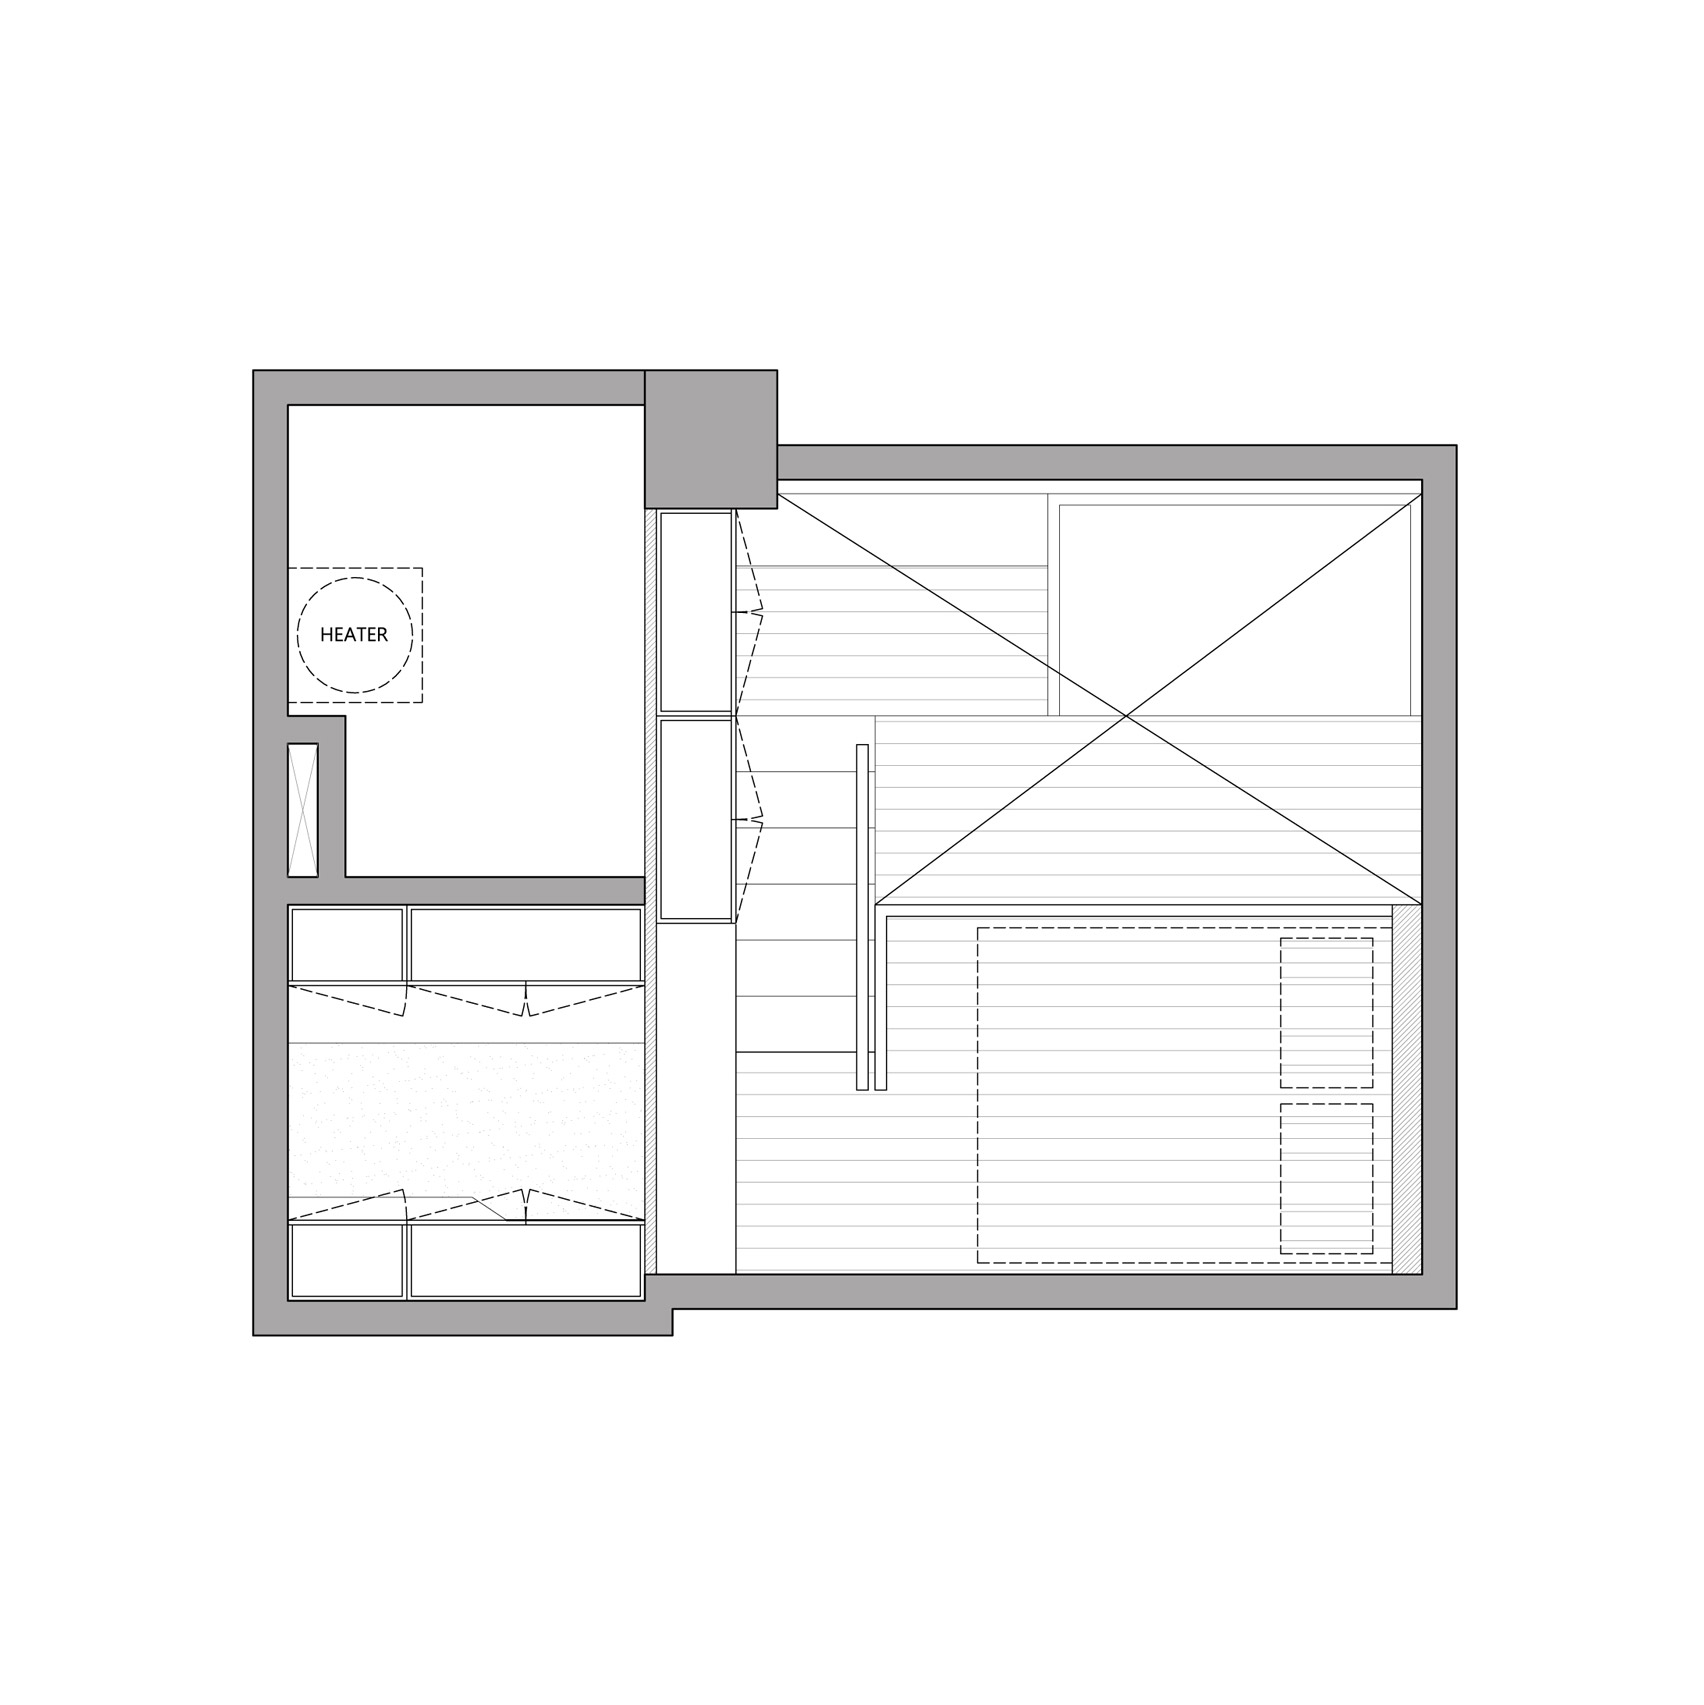 The mezzanine may be small but allows the apartment to include a queen-size bed which was previously impossible